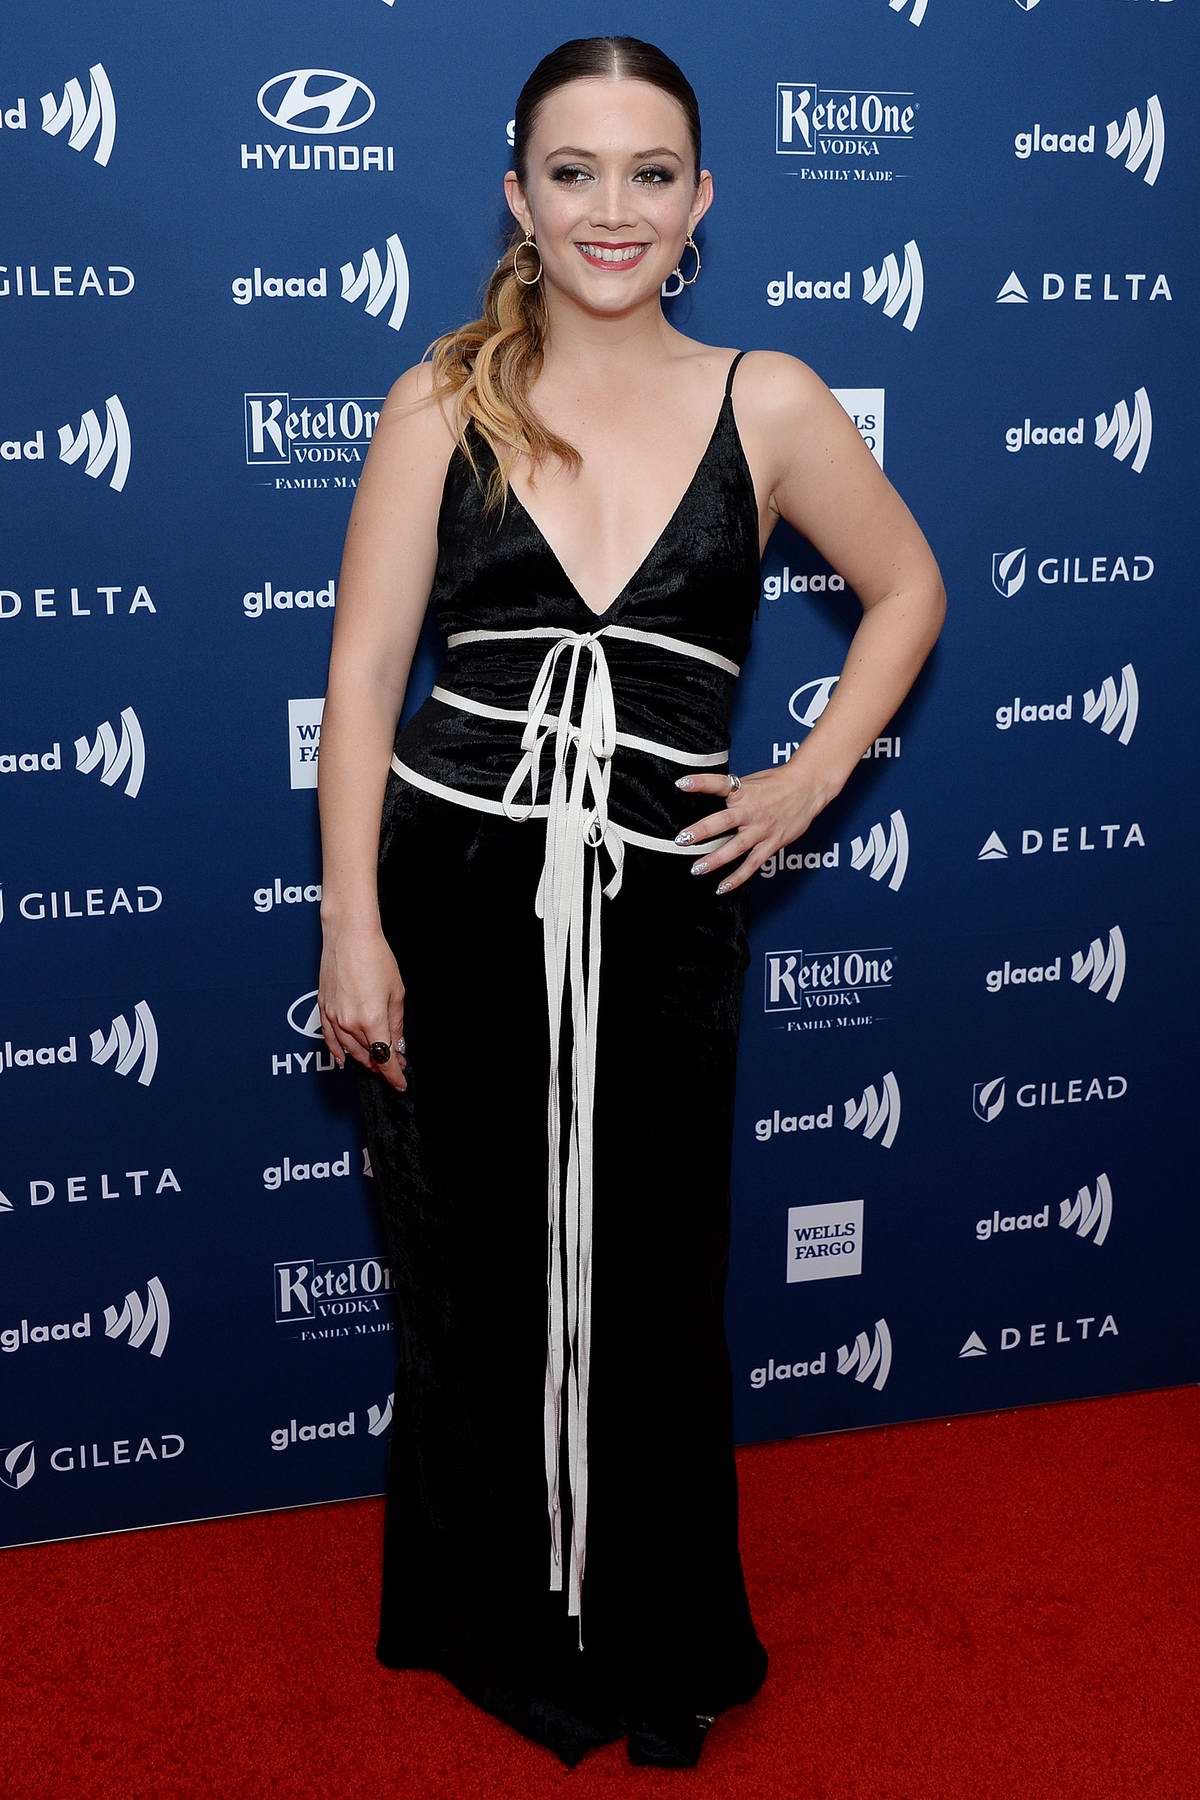 Billie Lourd attends the 30TH Annual GLAAD Media Awards in New York City